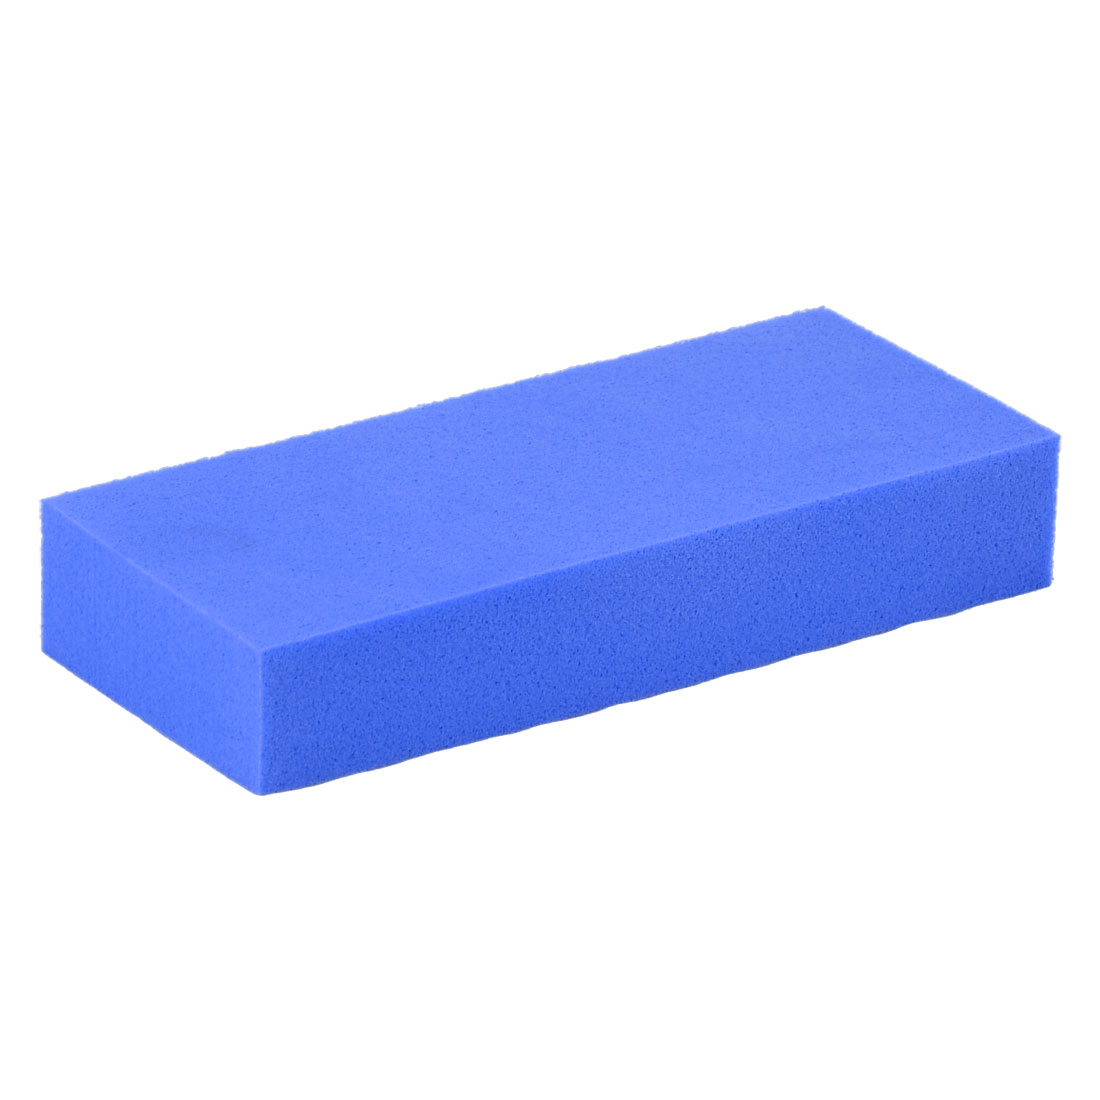 Water Absorbing Glass Clean Washing Blue Sponge Block